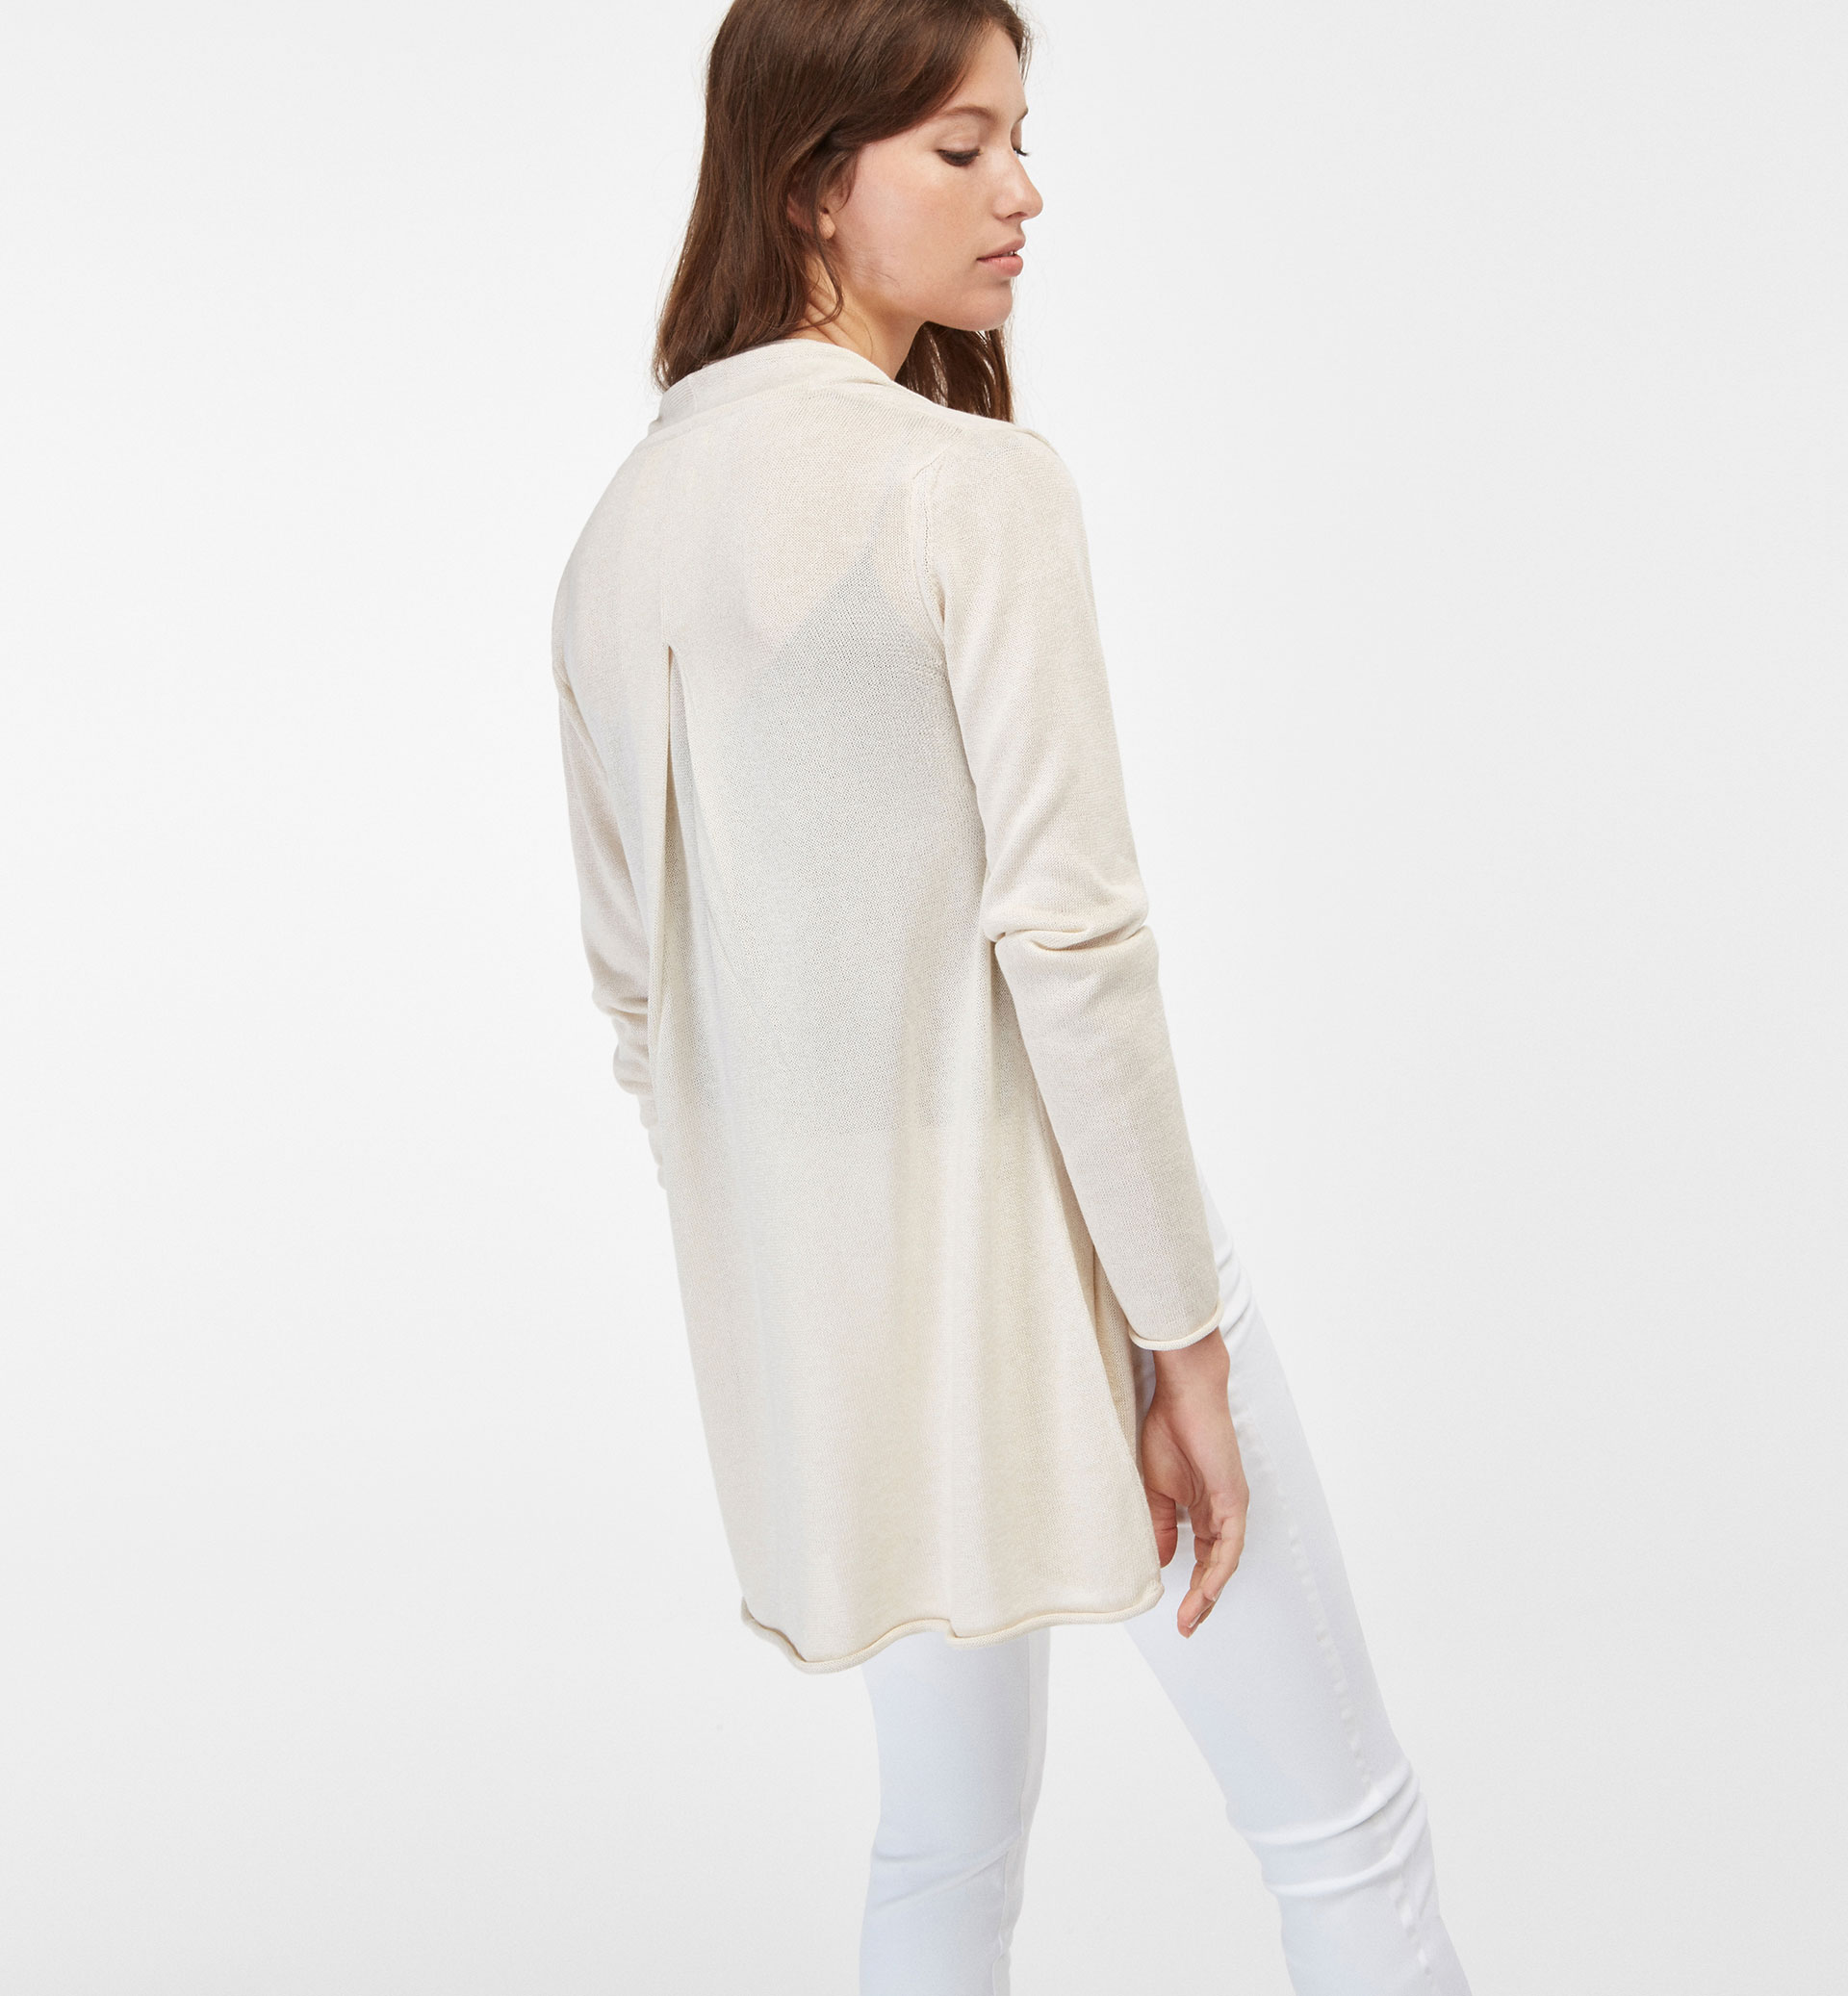 CARDIGAN WITH PLEAT DETAIL AT THE BACK